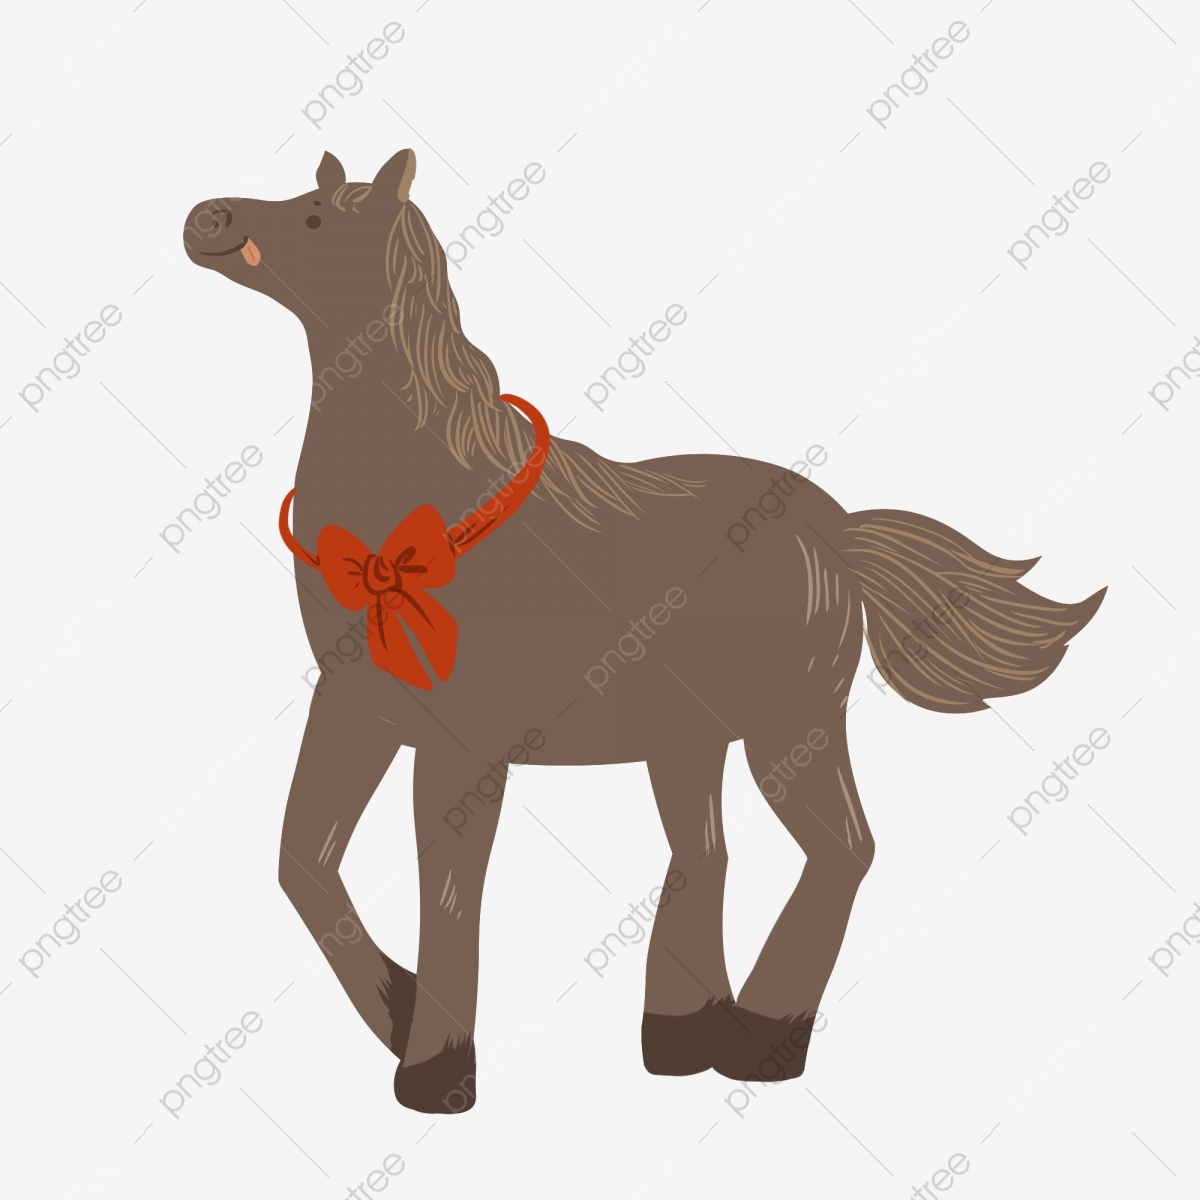 Horse Zodiac Cartoon Hand Drawn Cute Horse Zodiac Cartoon Hand Drawn Png Transparent Clipart Image And Psd File For Free Download